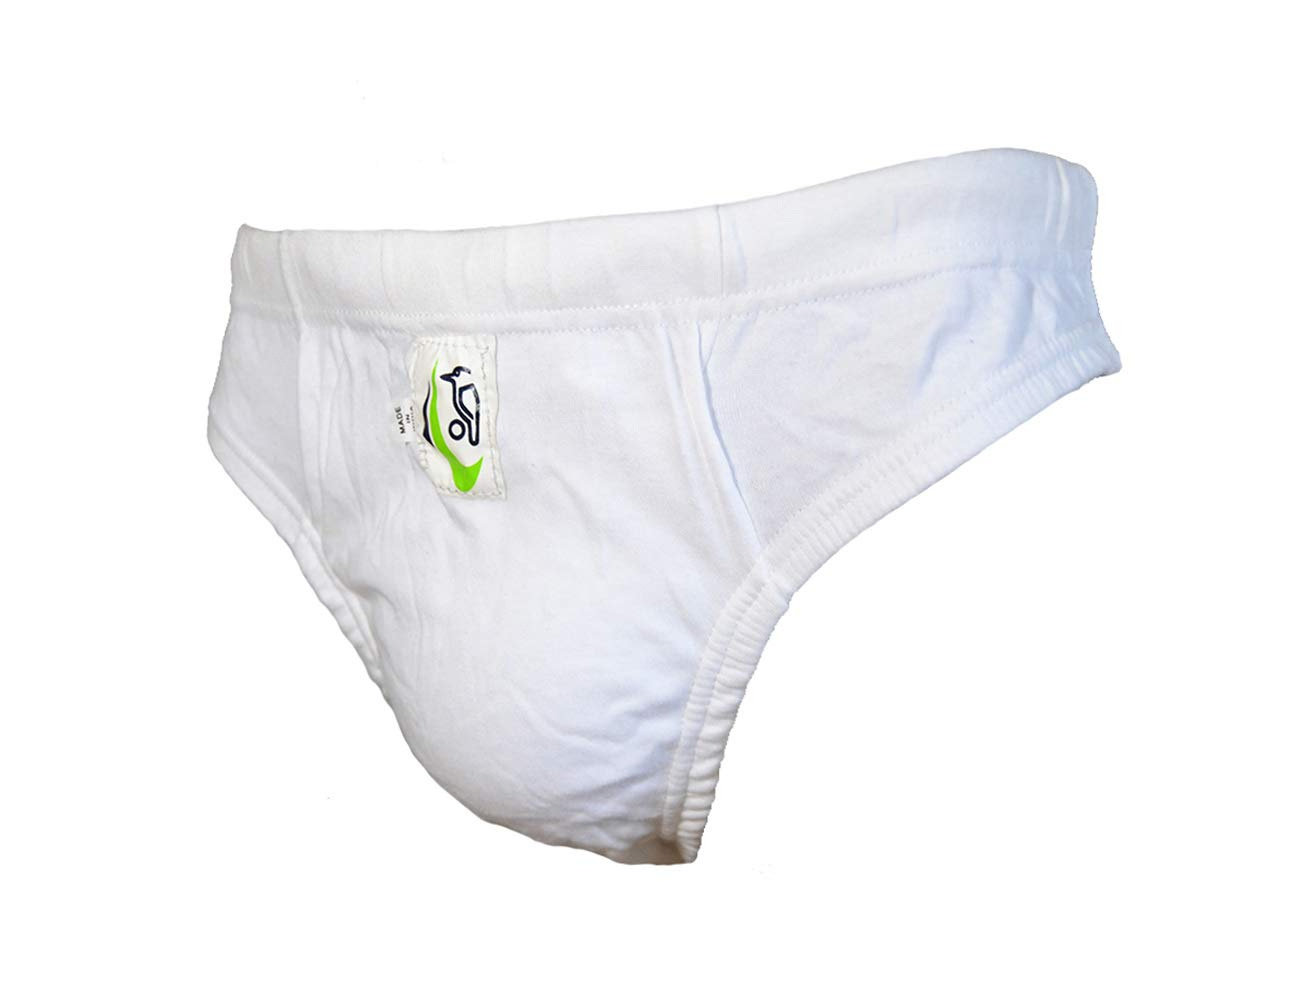 Mens /& Boys Opttiuuq Qvu cotton rich Cricket Briefs with pouch for Abdo Guard